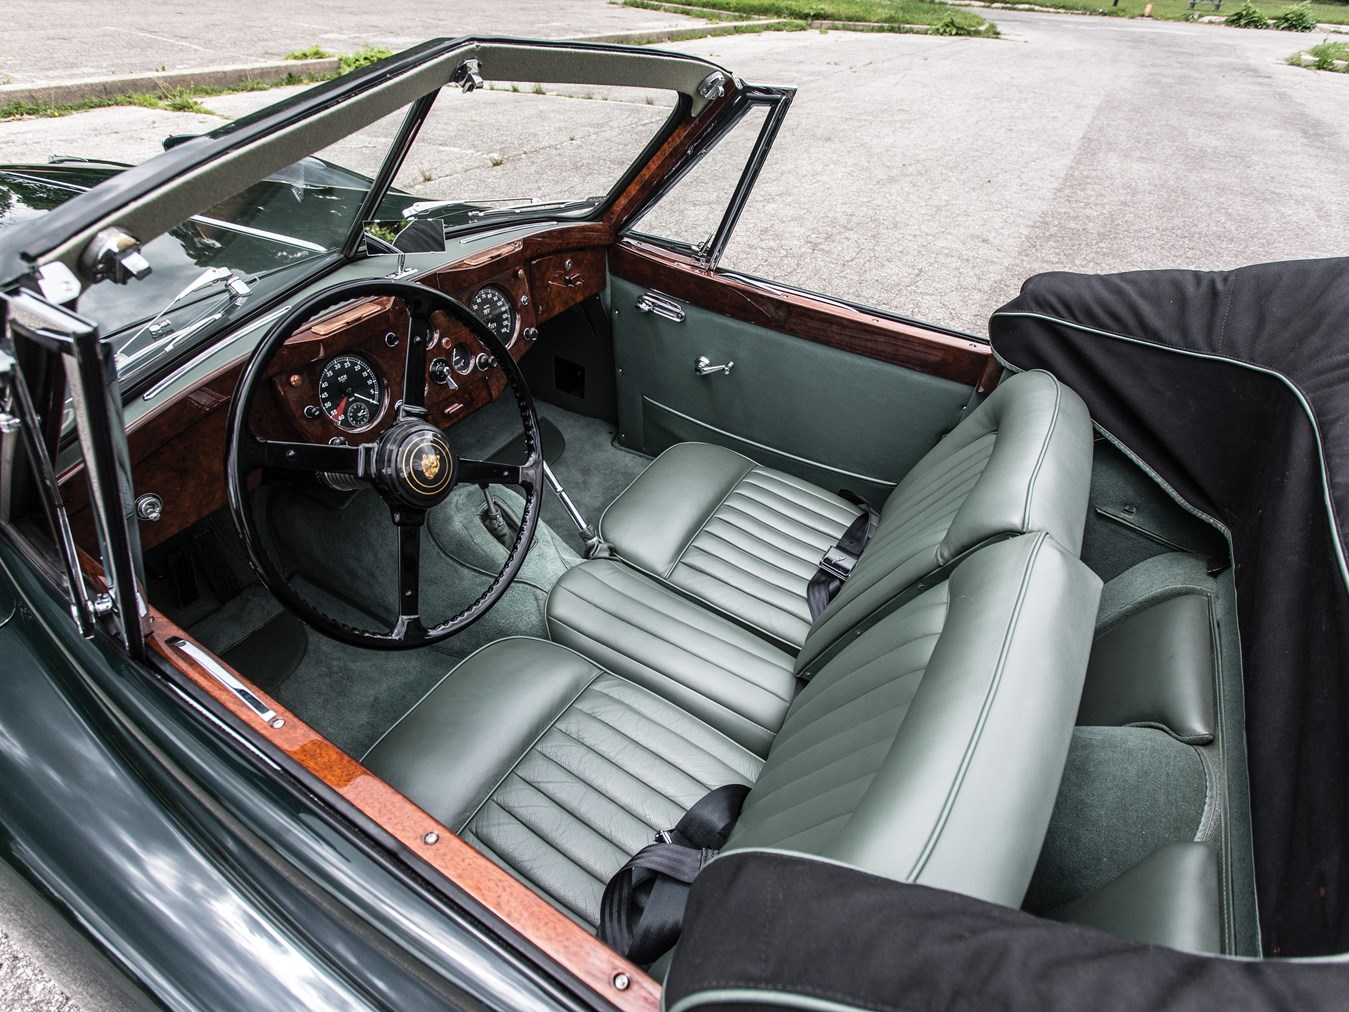 The Jaguar XK140 offered a significant upgrade in interior luxury by comparison with the XK120 it superceded.